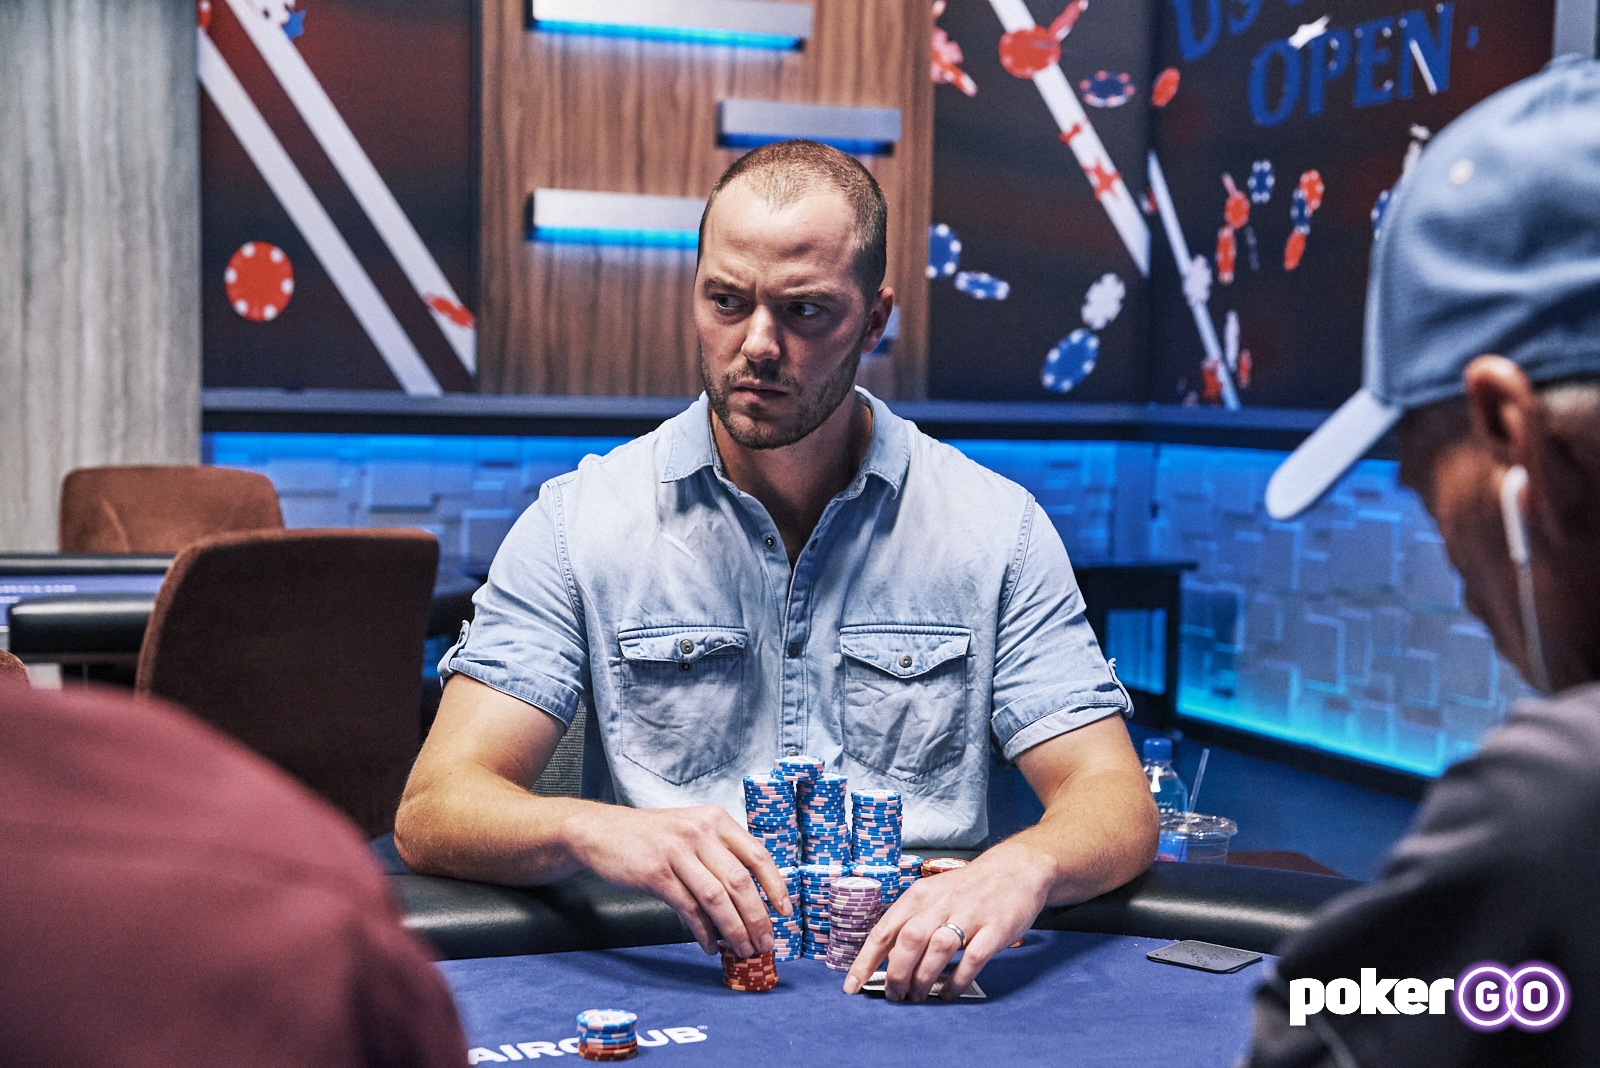 Sean Winter Leads Event #12: $50,000 No-Limit Hold'em Final Table: Sam Soverel Still in Contention for the USPO Championship